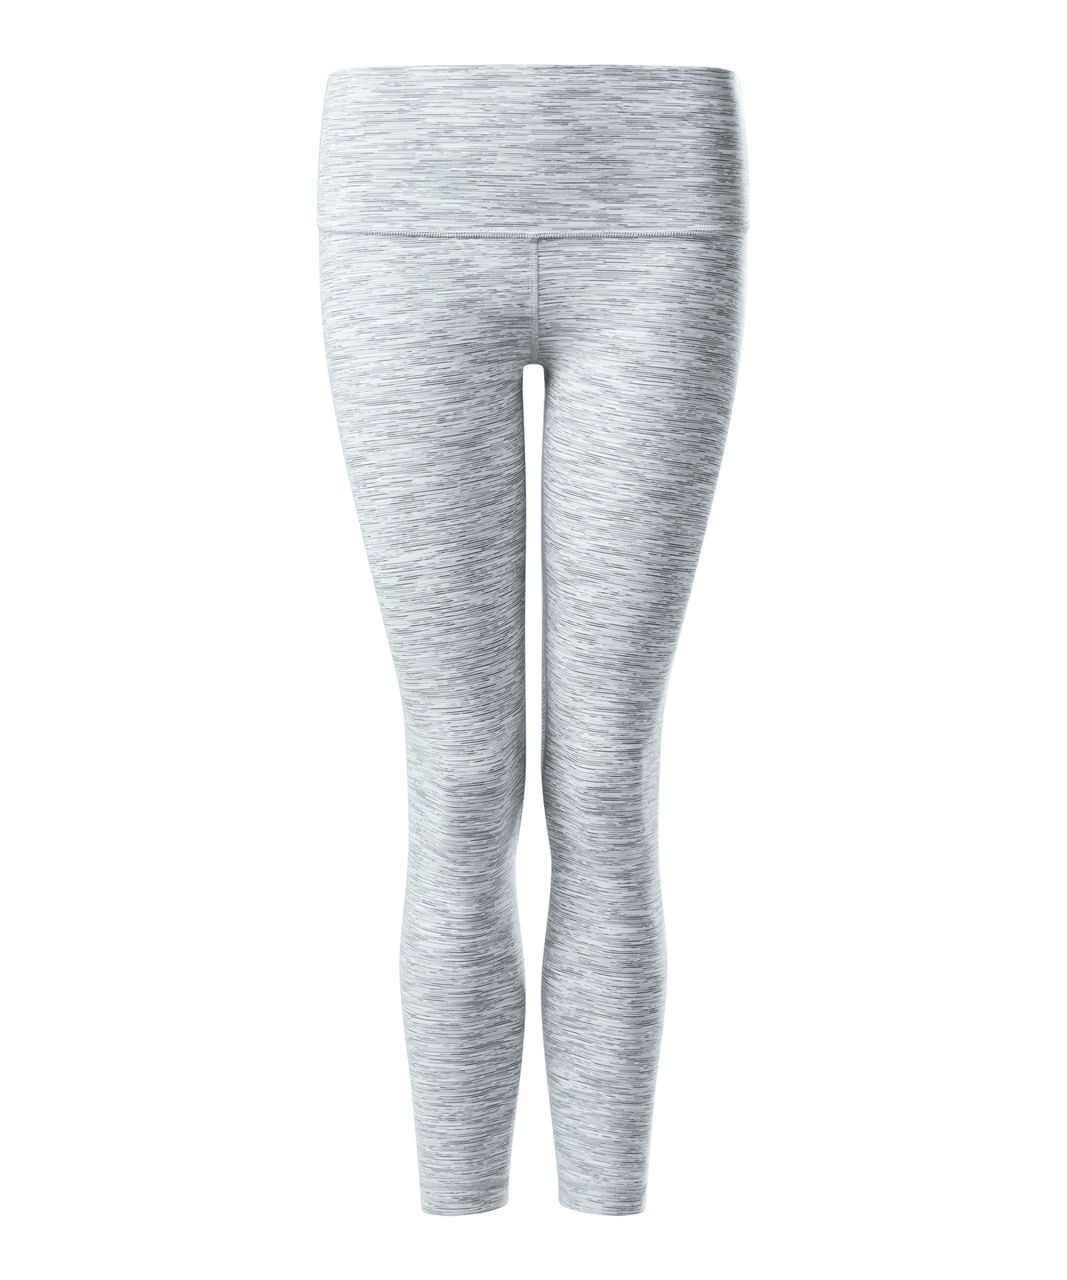 90d6c29f000a9 Lululemon High Times Pant - Wee Are From Space Ice Grey Alpine White ...